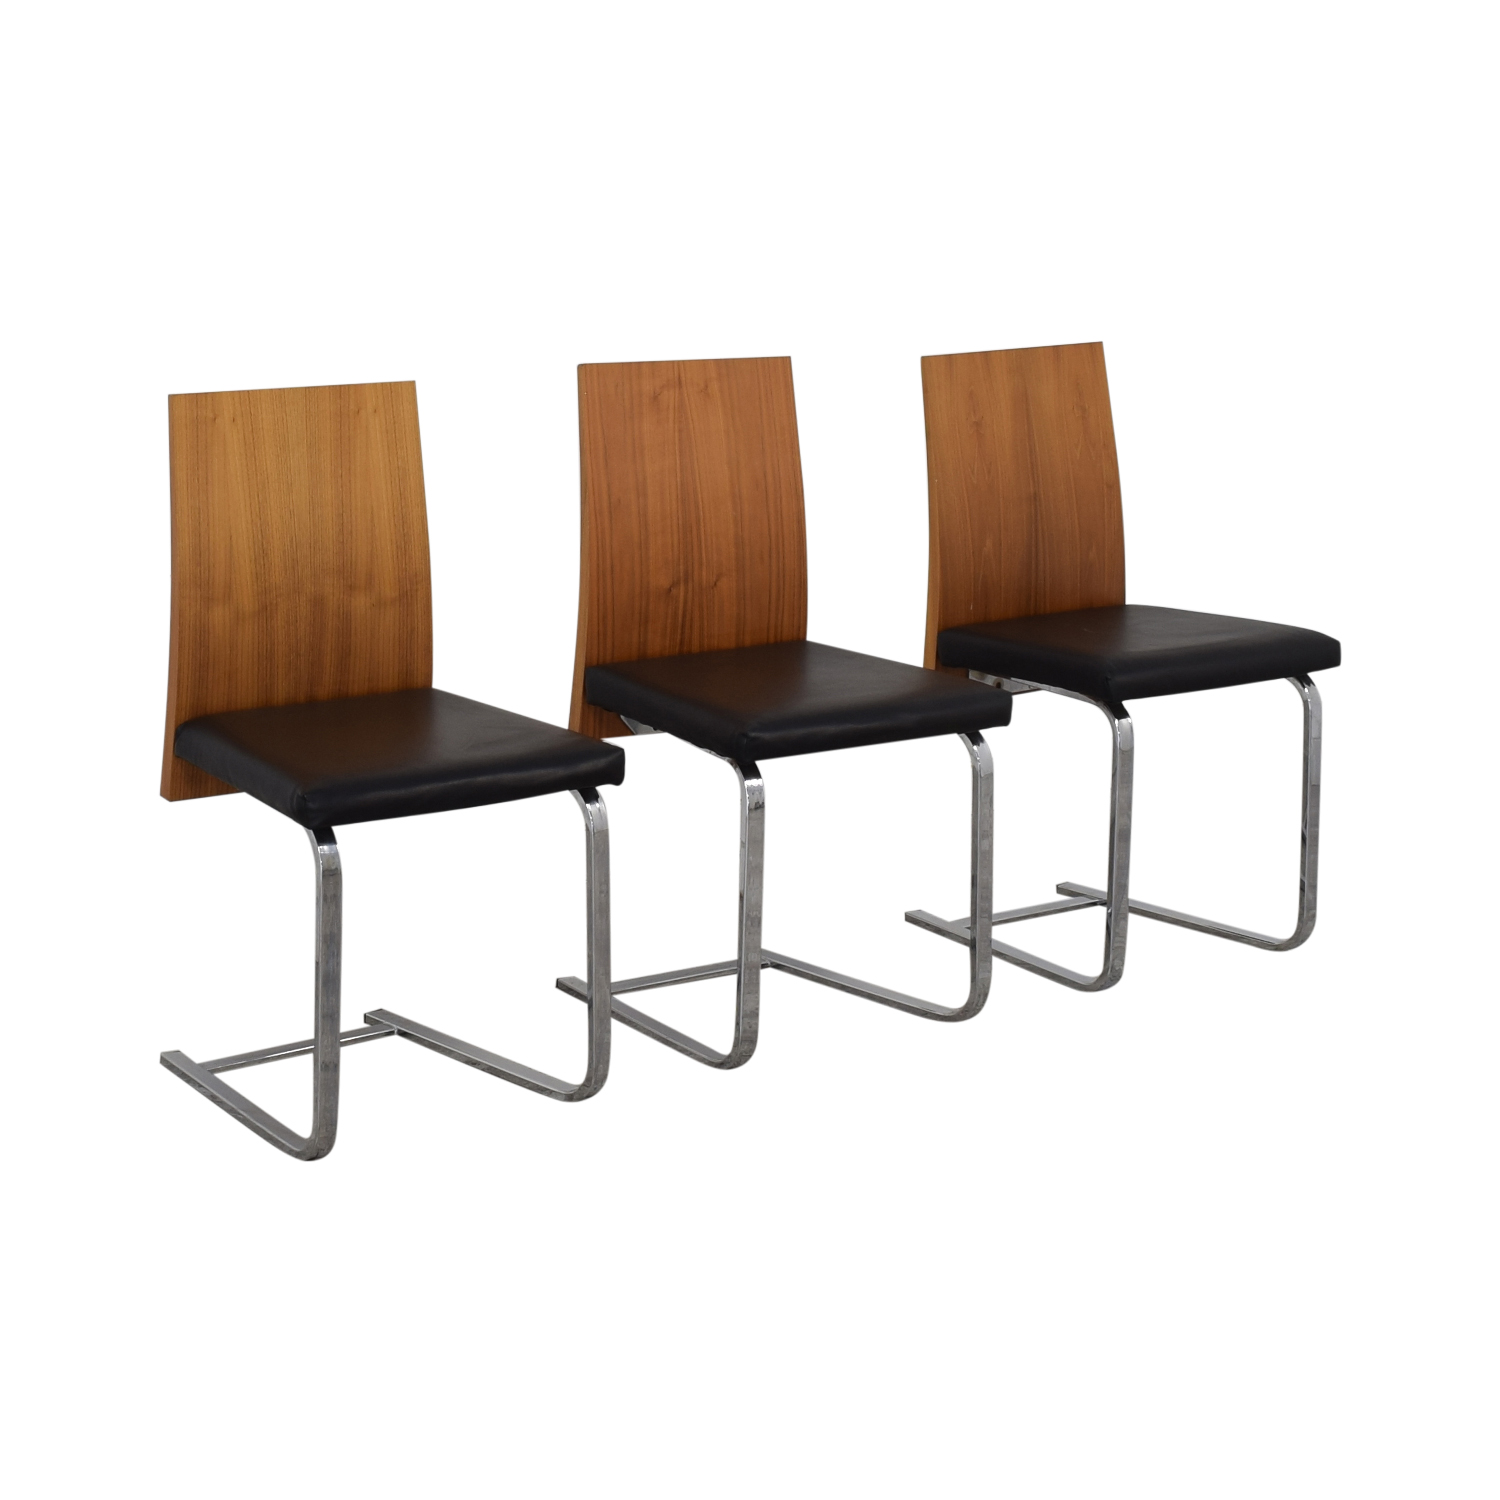 shop Domitalia Jeff-sl Chrome Black Leather and Wood Dining Chairs Domitalia